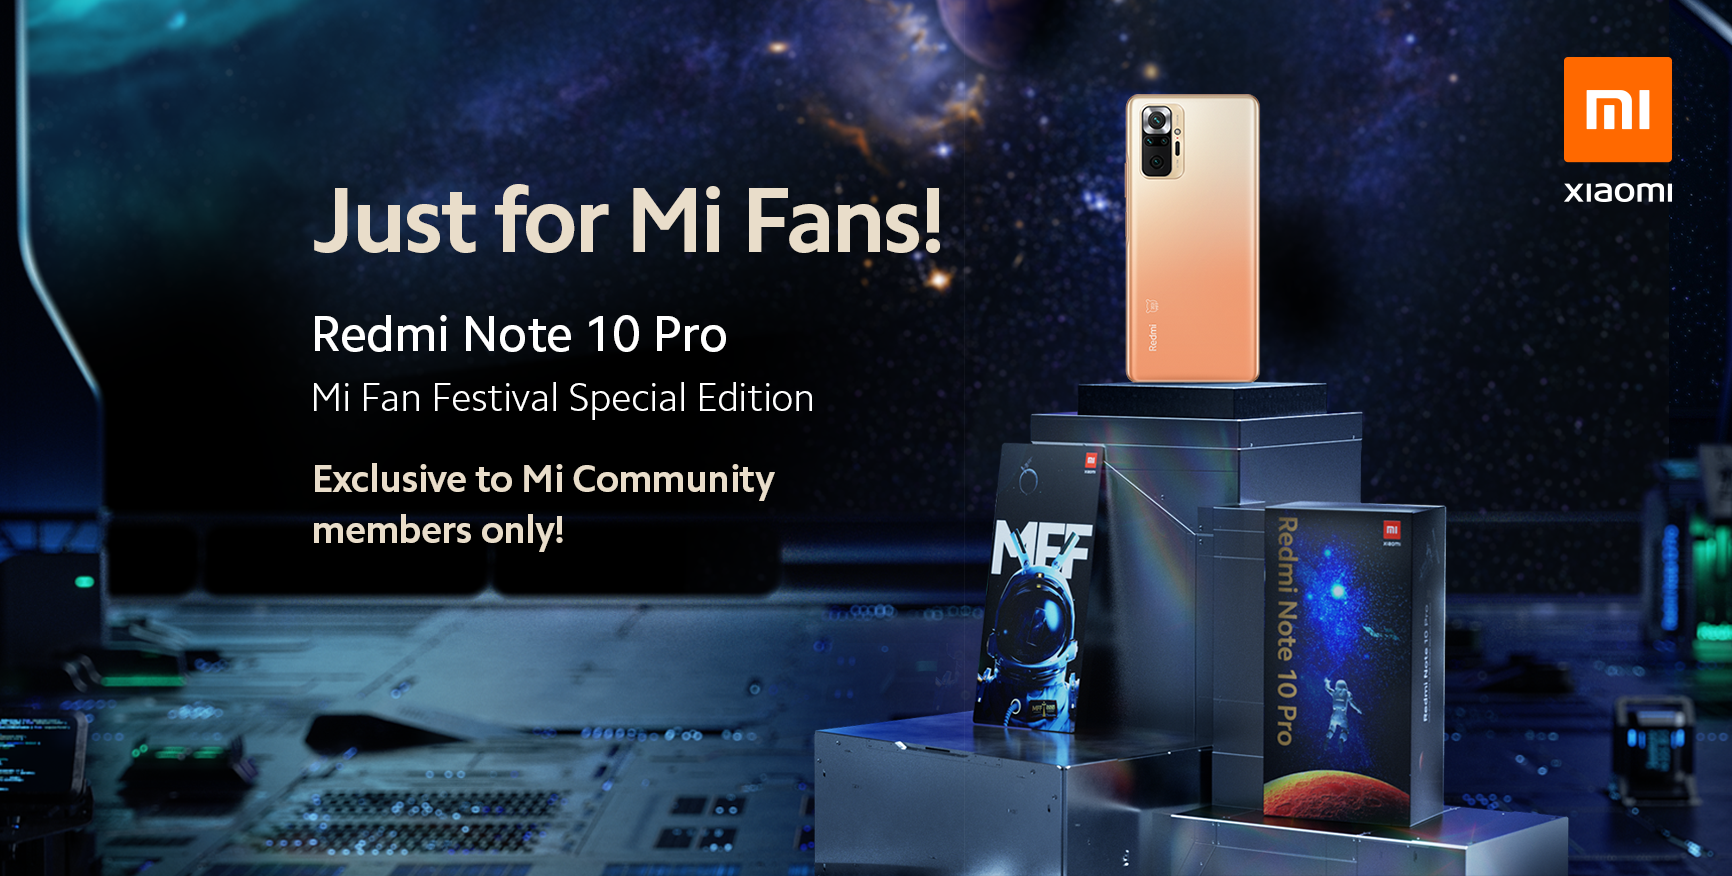 RN 10 Pro MFF Special Edition